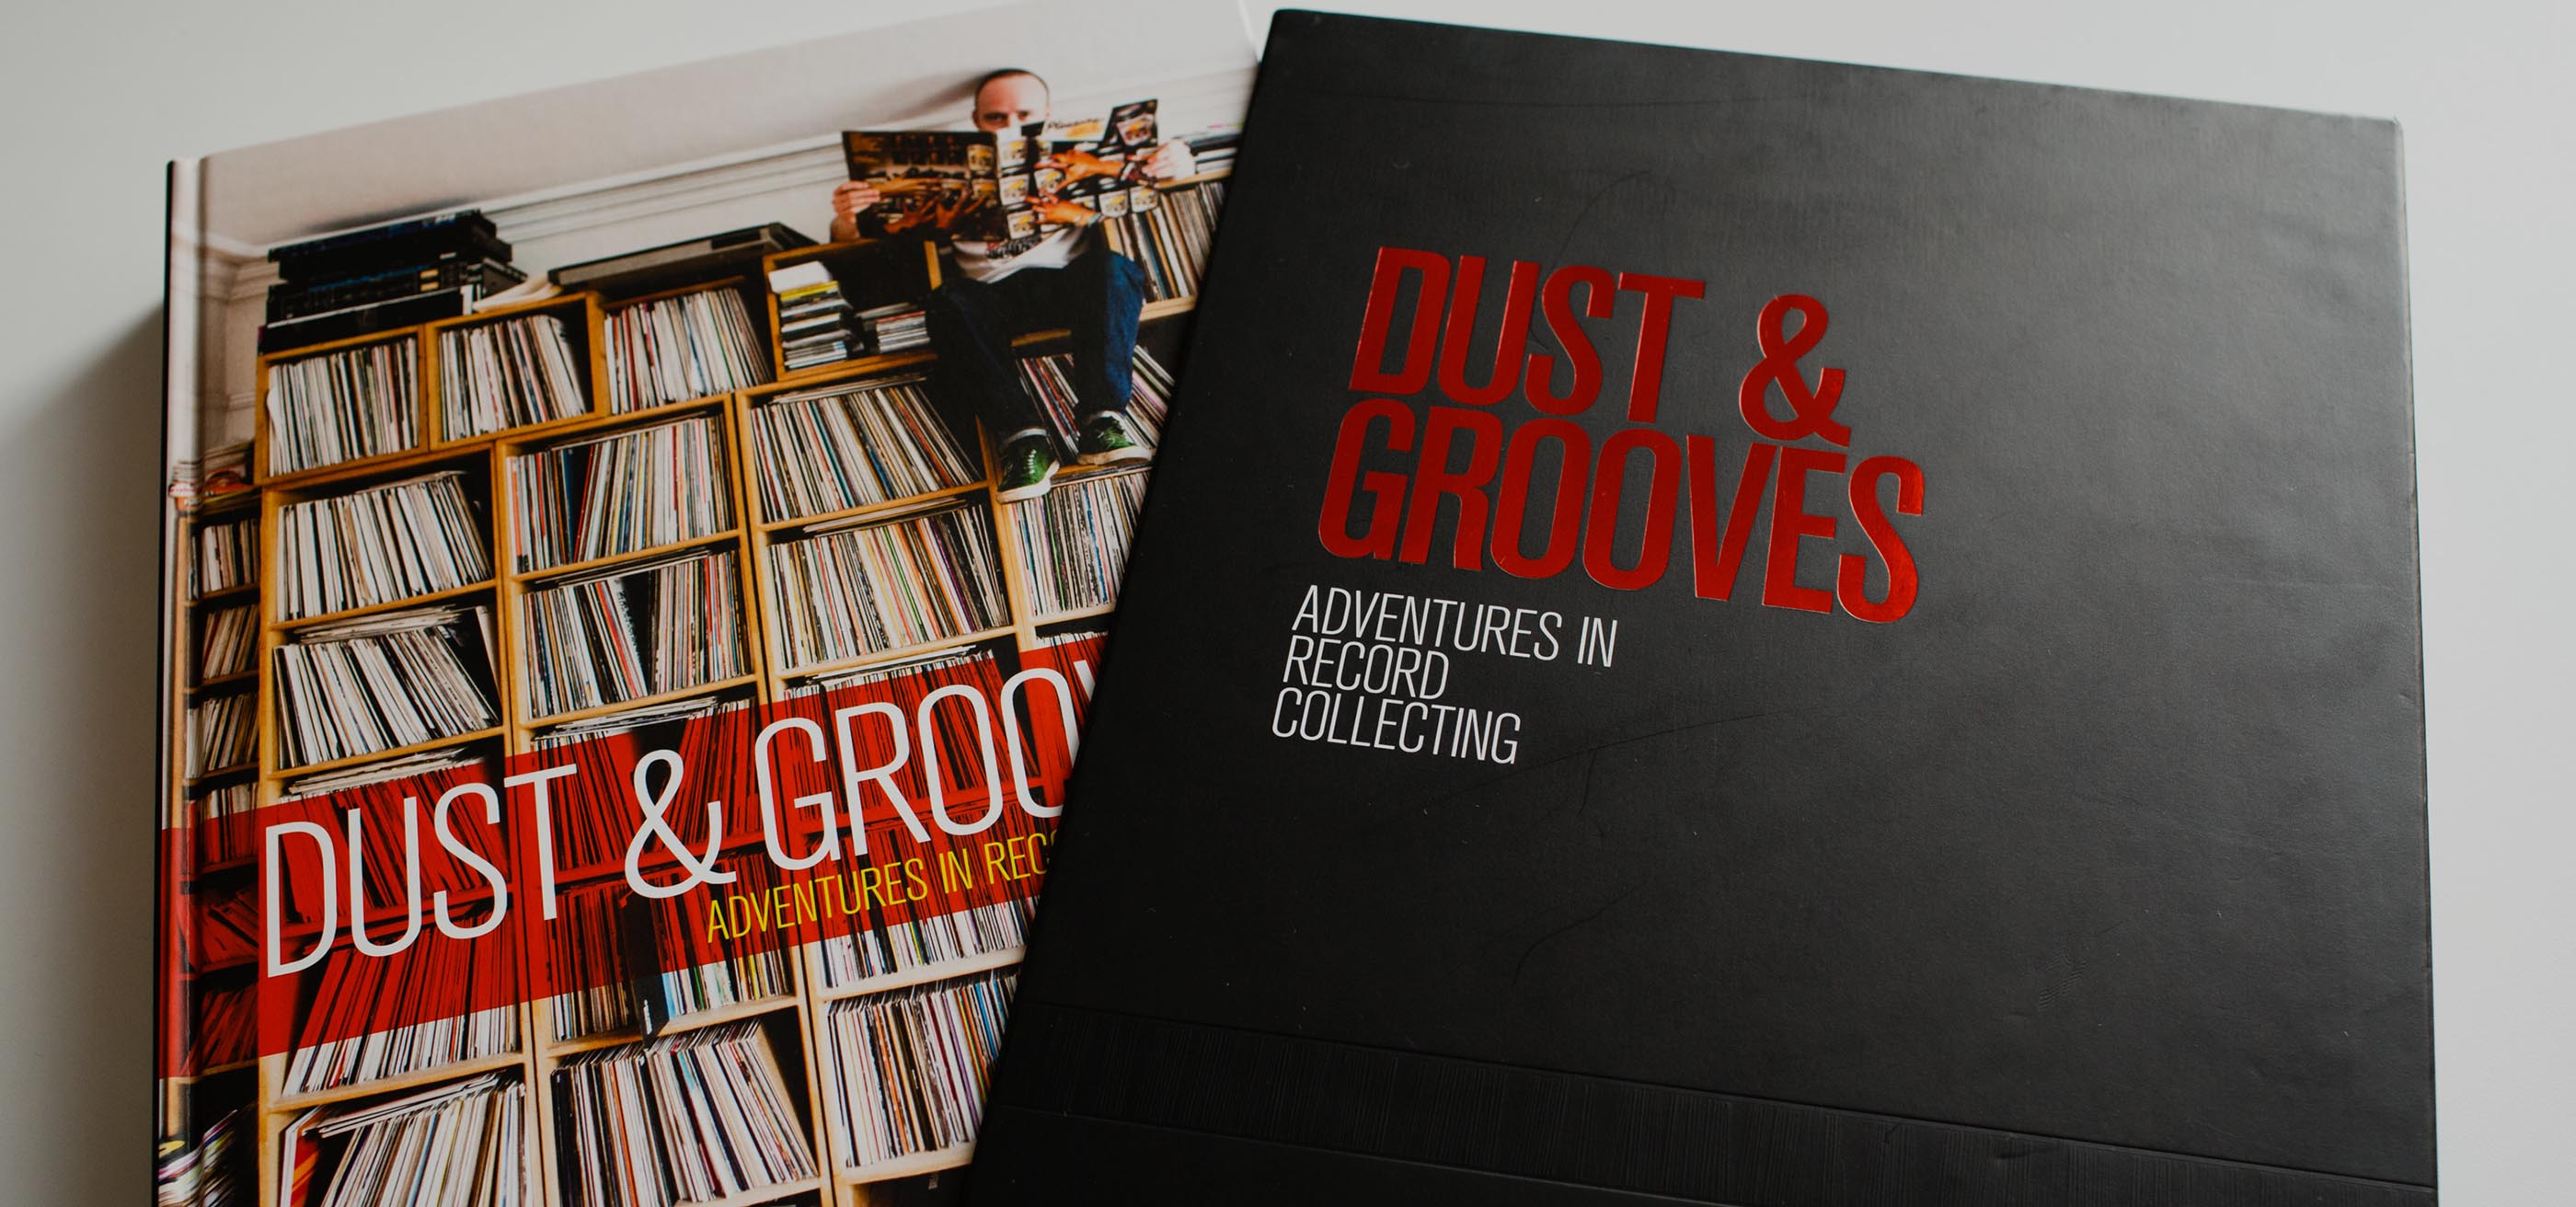 Dust & Grooves Adventures in Record Collecting